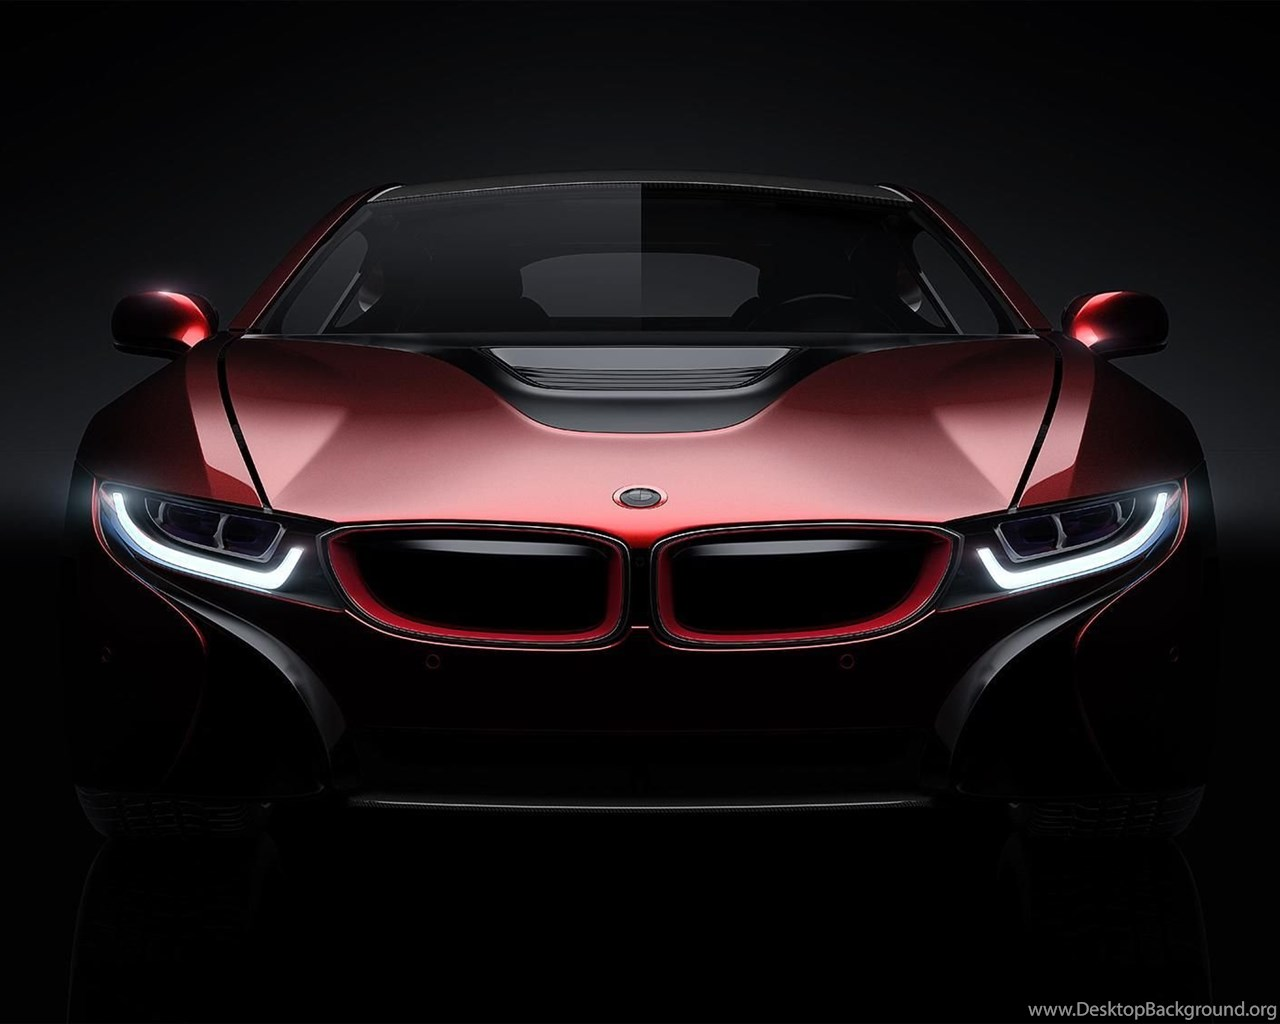 Bmw I8 Wallpapers Hd At Night Desktop Background